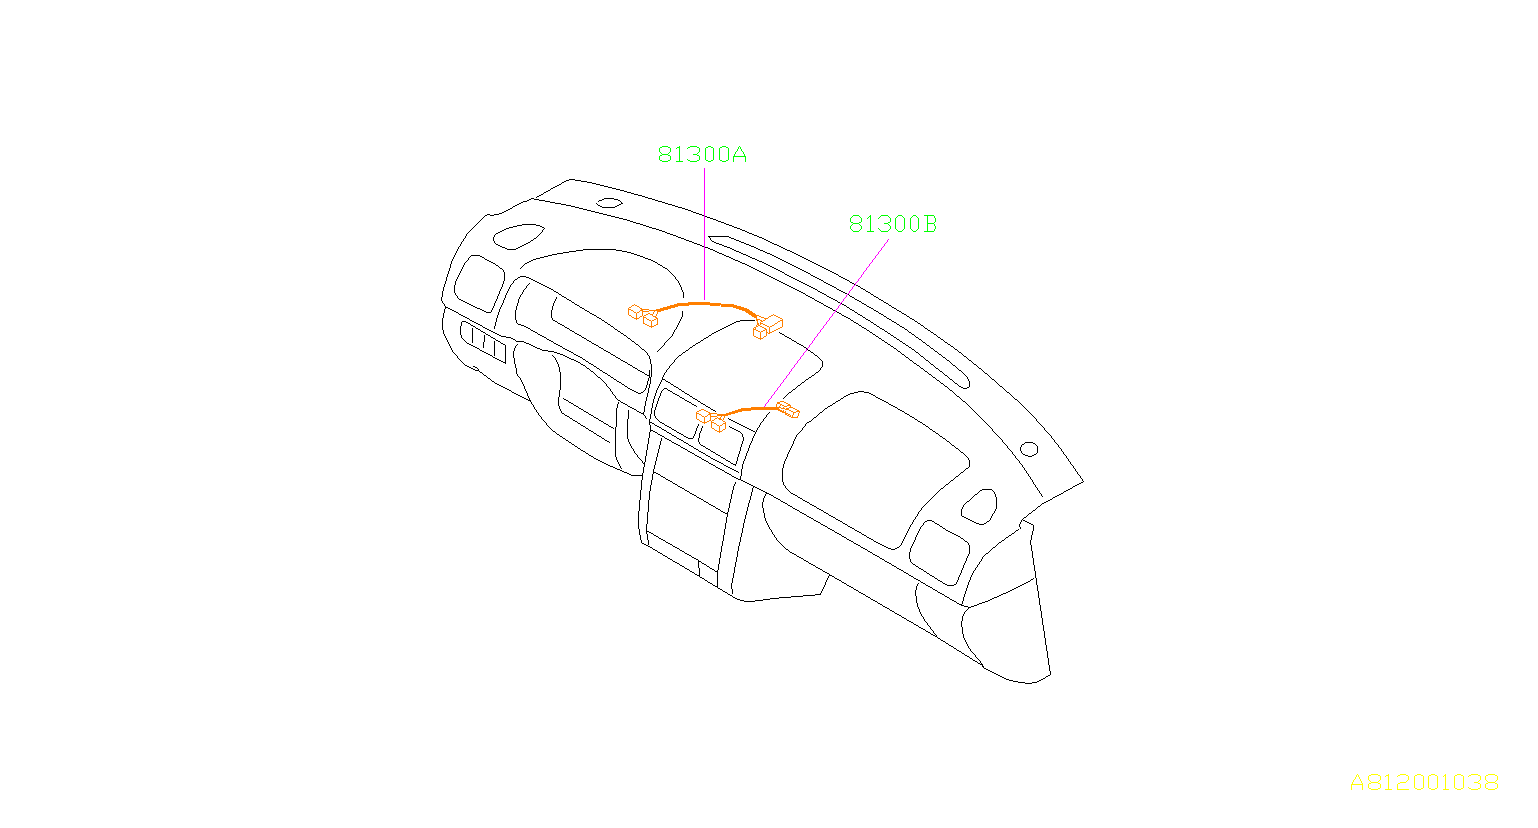 Subaru Impreza Harness-instrument panel, center. Wiring